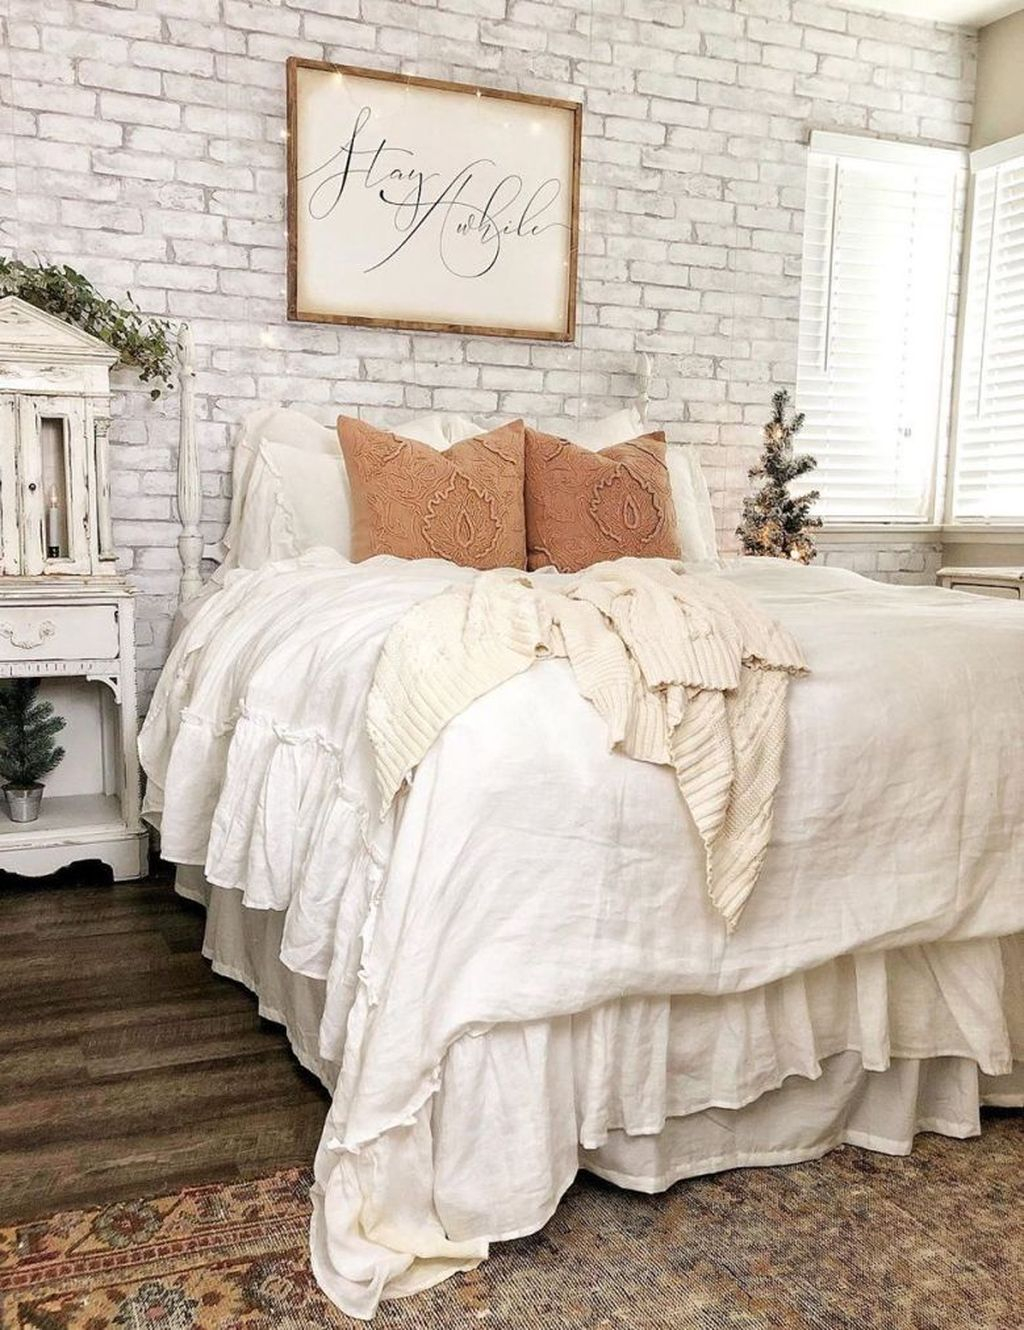 Lovely Winter Bedroom Design Ideas With Flower Themes To Try Asap 13